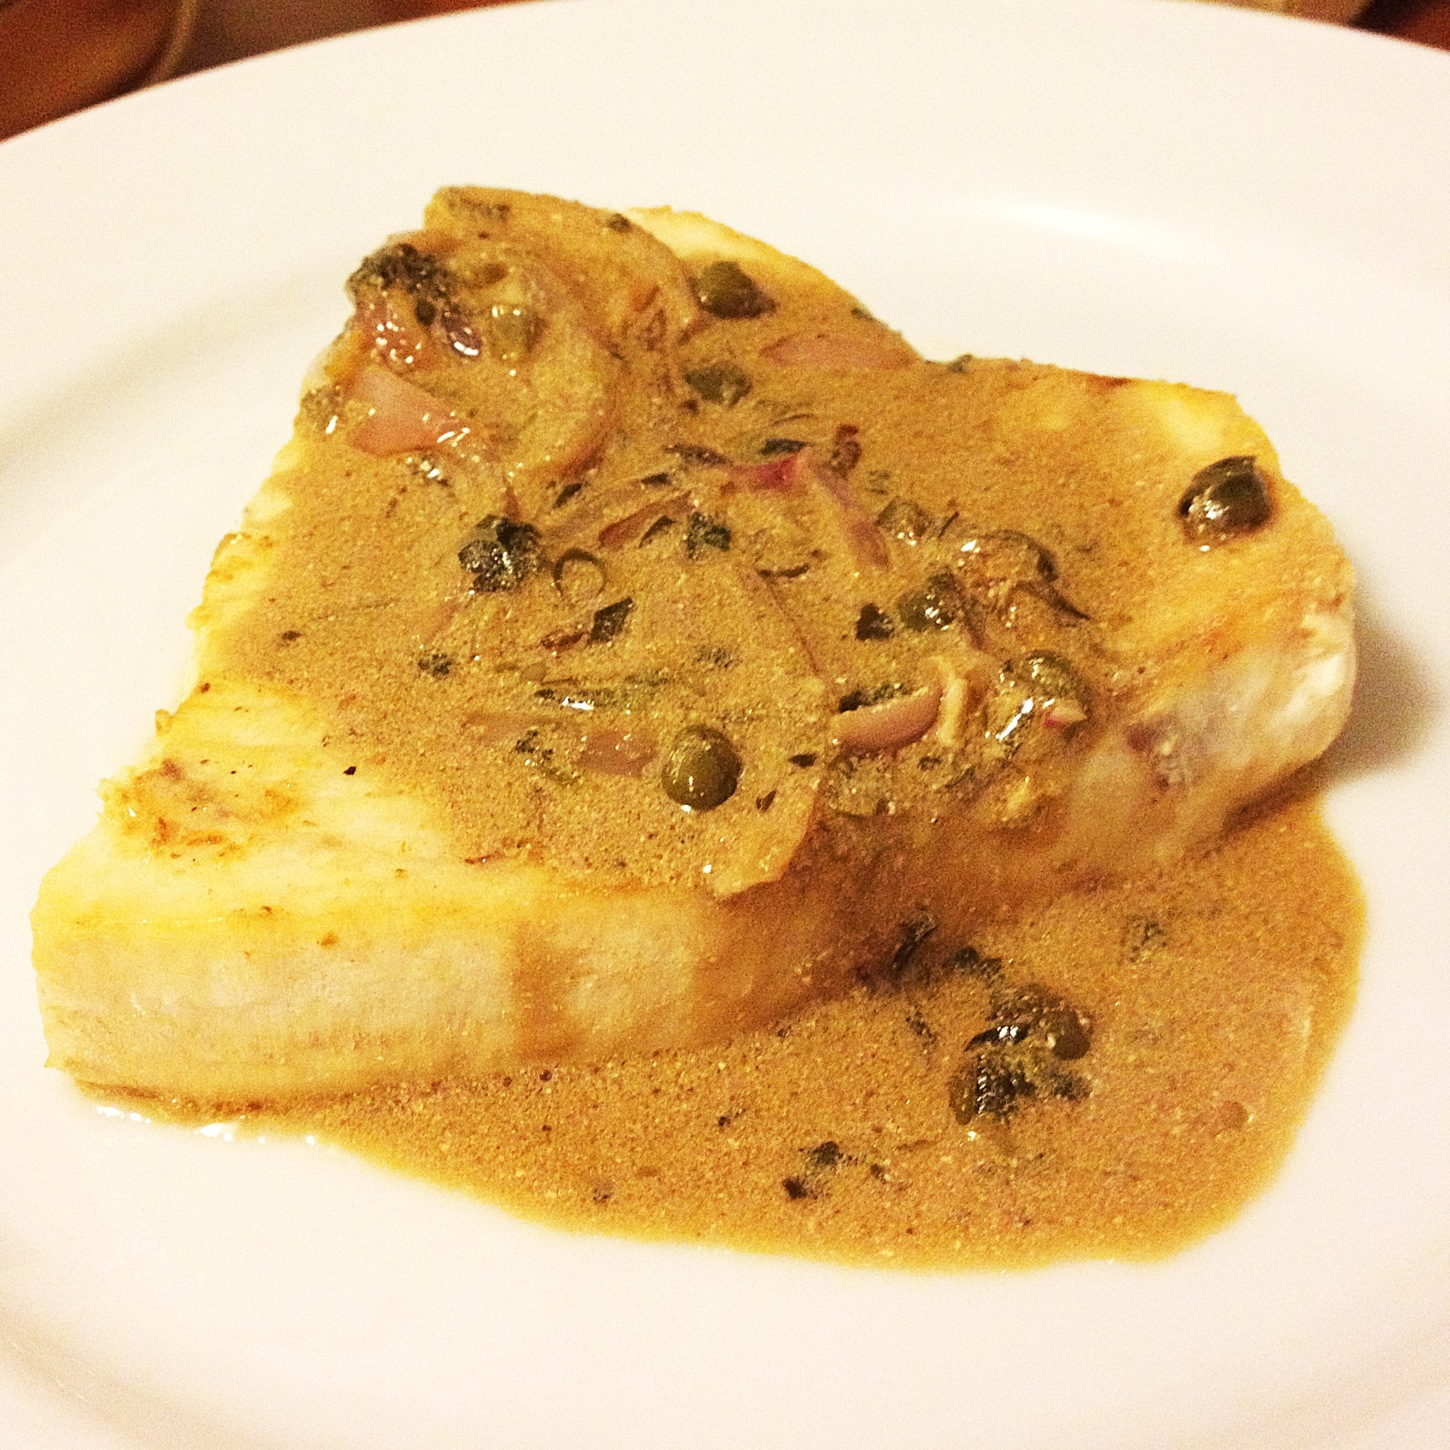 ... est Bon . . .: Pan-Seared Swordfish Steaks with Dijon Cream Sauce